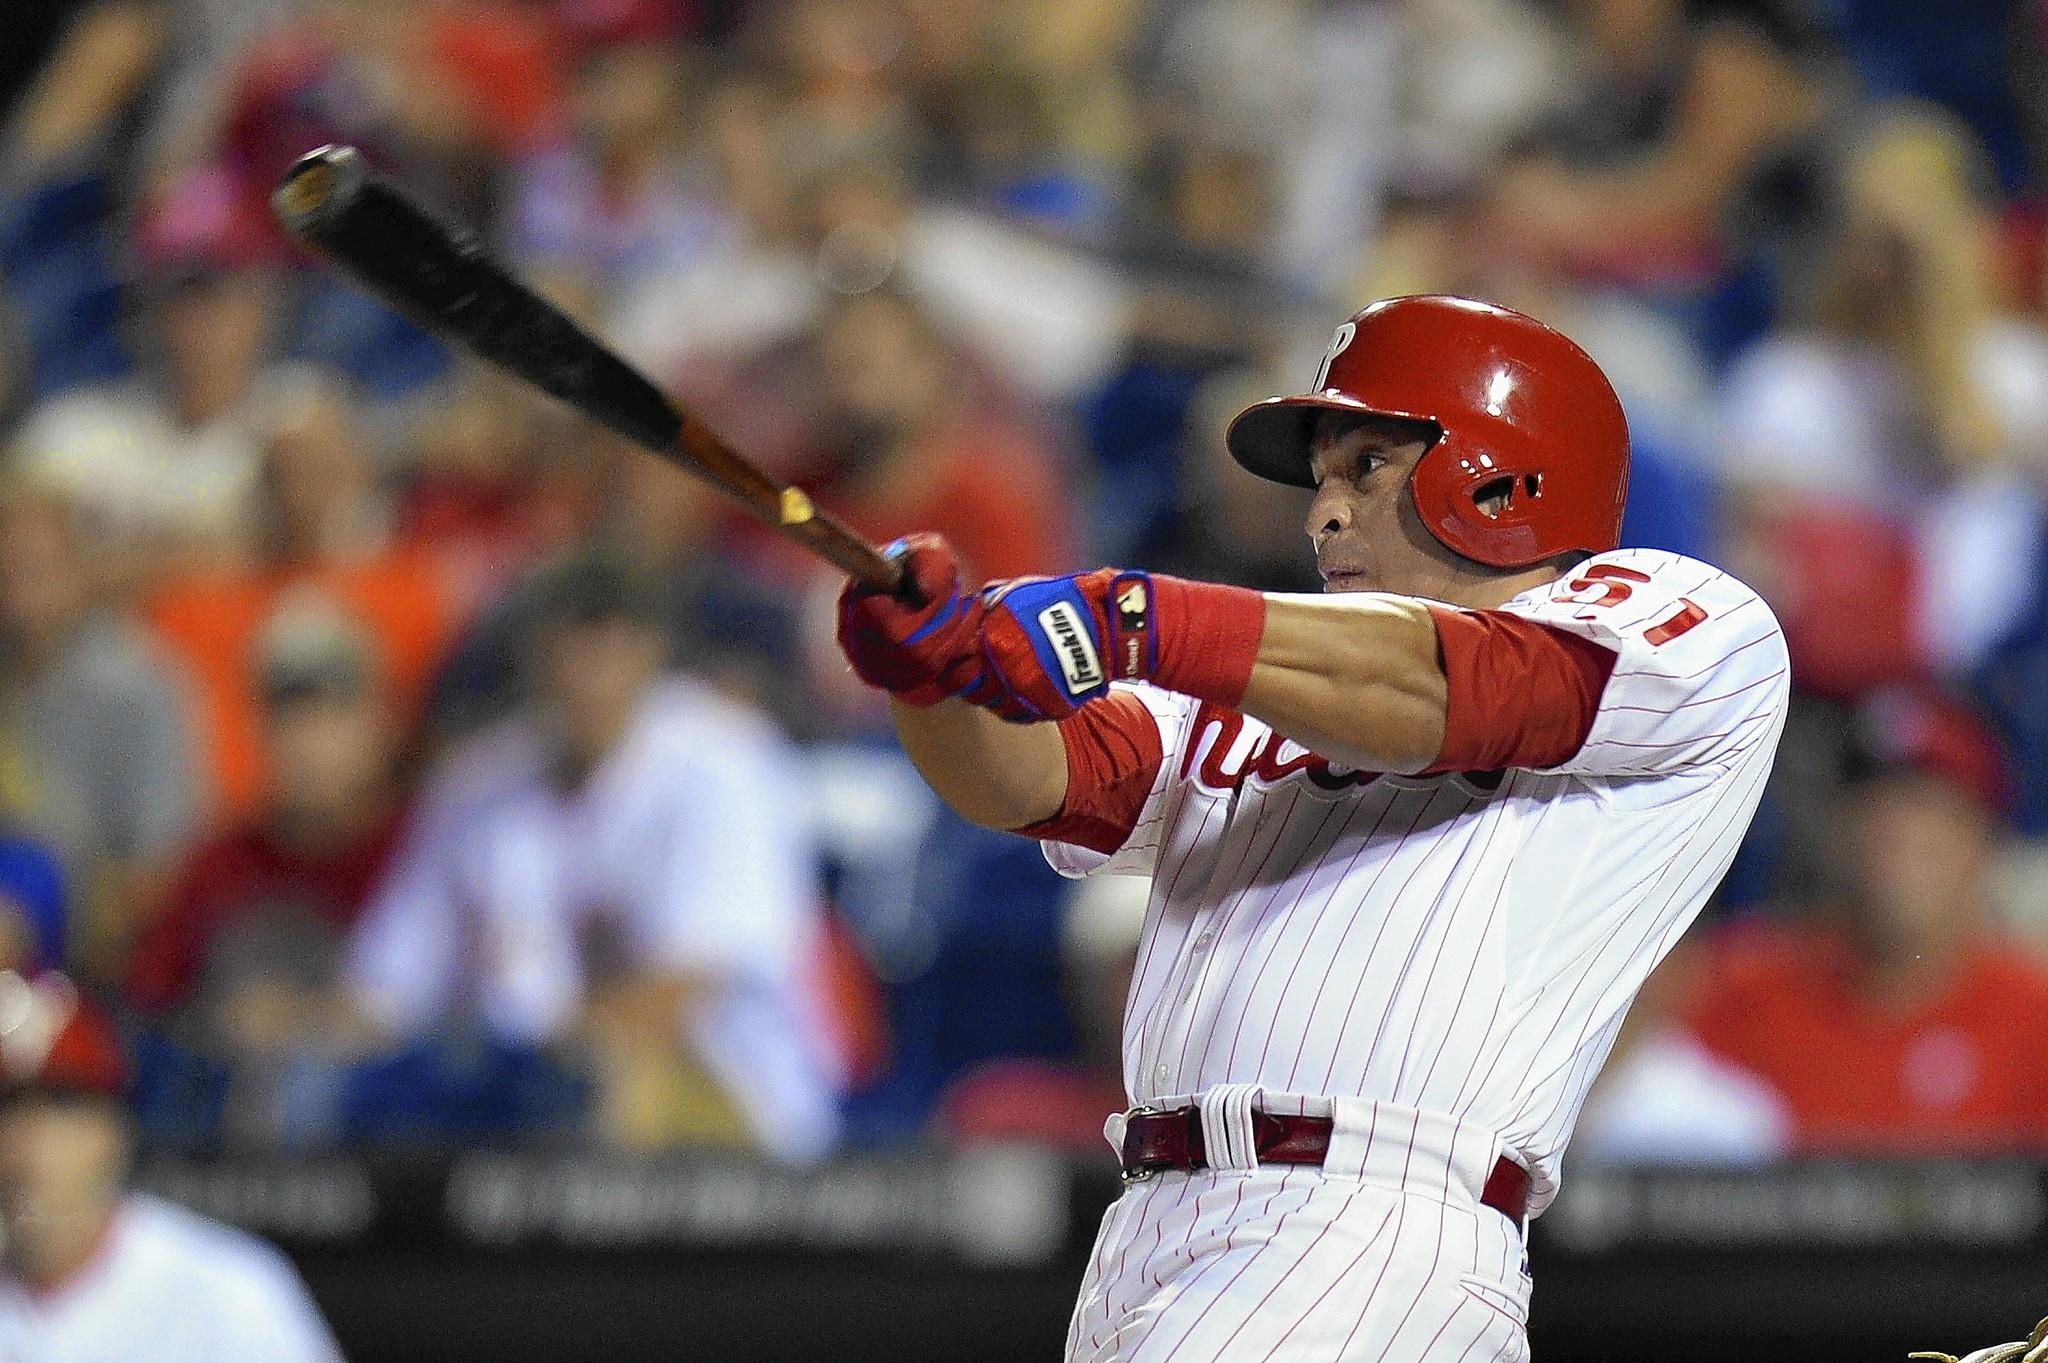 Carlos Ruiz #51 of the Philadelphia Phillies hits a two-run double in the first inning against the San Diego Padres at Citizens Bank Park on September 12, 2013 in Philadelphia, Pennsylvania.